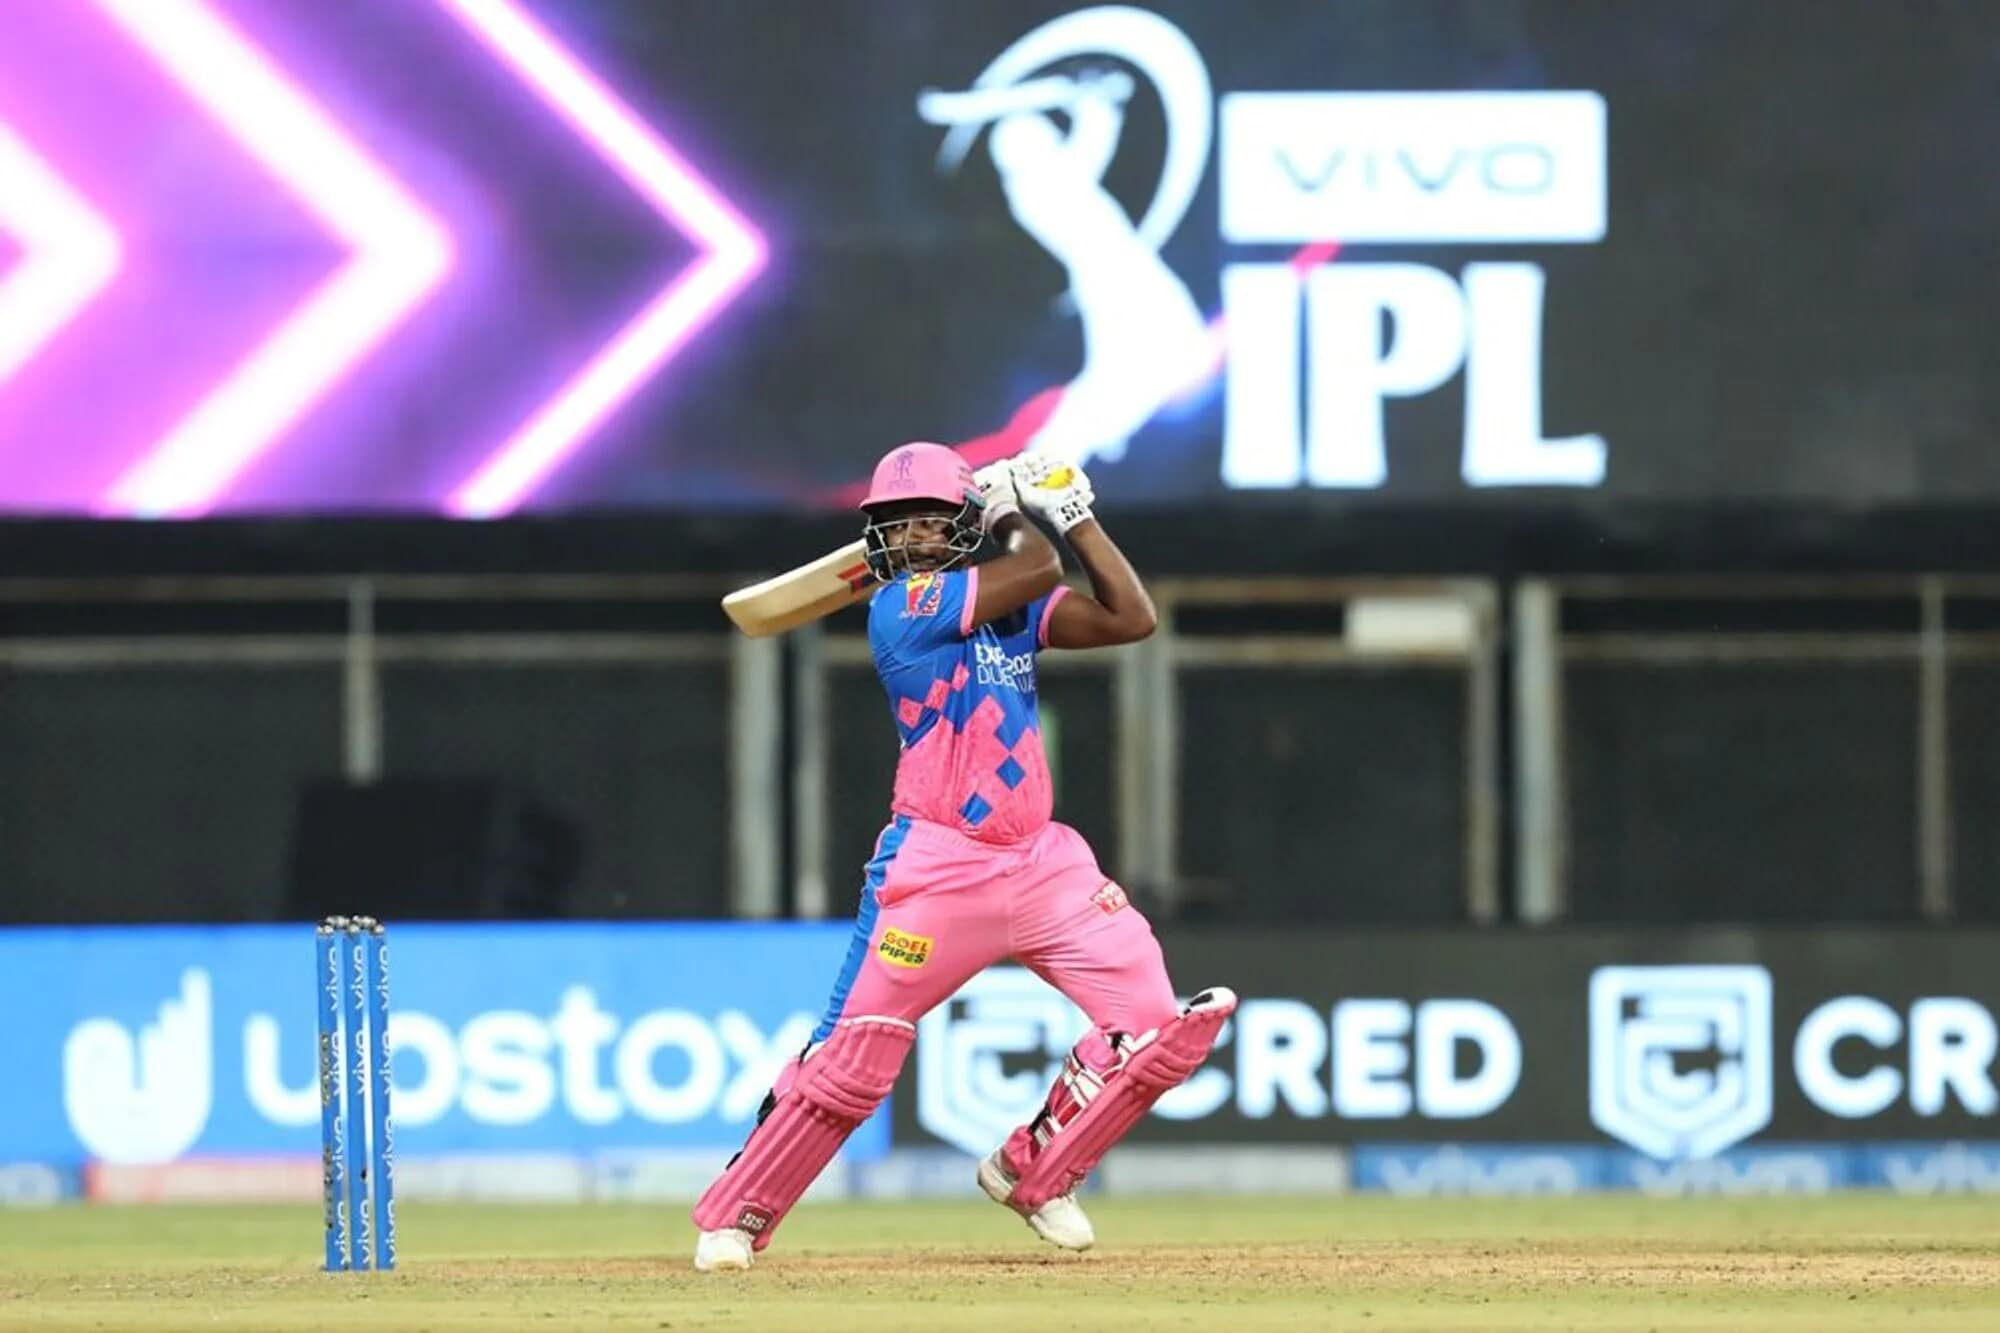 Sanju Samson did what he does best in the IPL – start the tournament with a blistering hundred! Despite losing two early wickets in a mammoth 222-run chase, Samson kept the hope and belief of the Royals alive initially taking his time to resurrect the innings before going on the offensive after the dismissal of Jos Buttler.